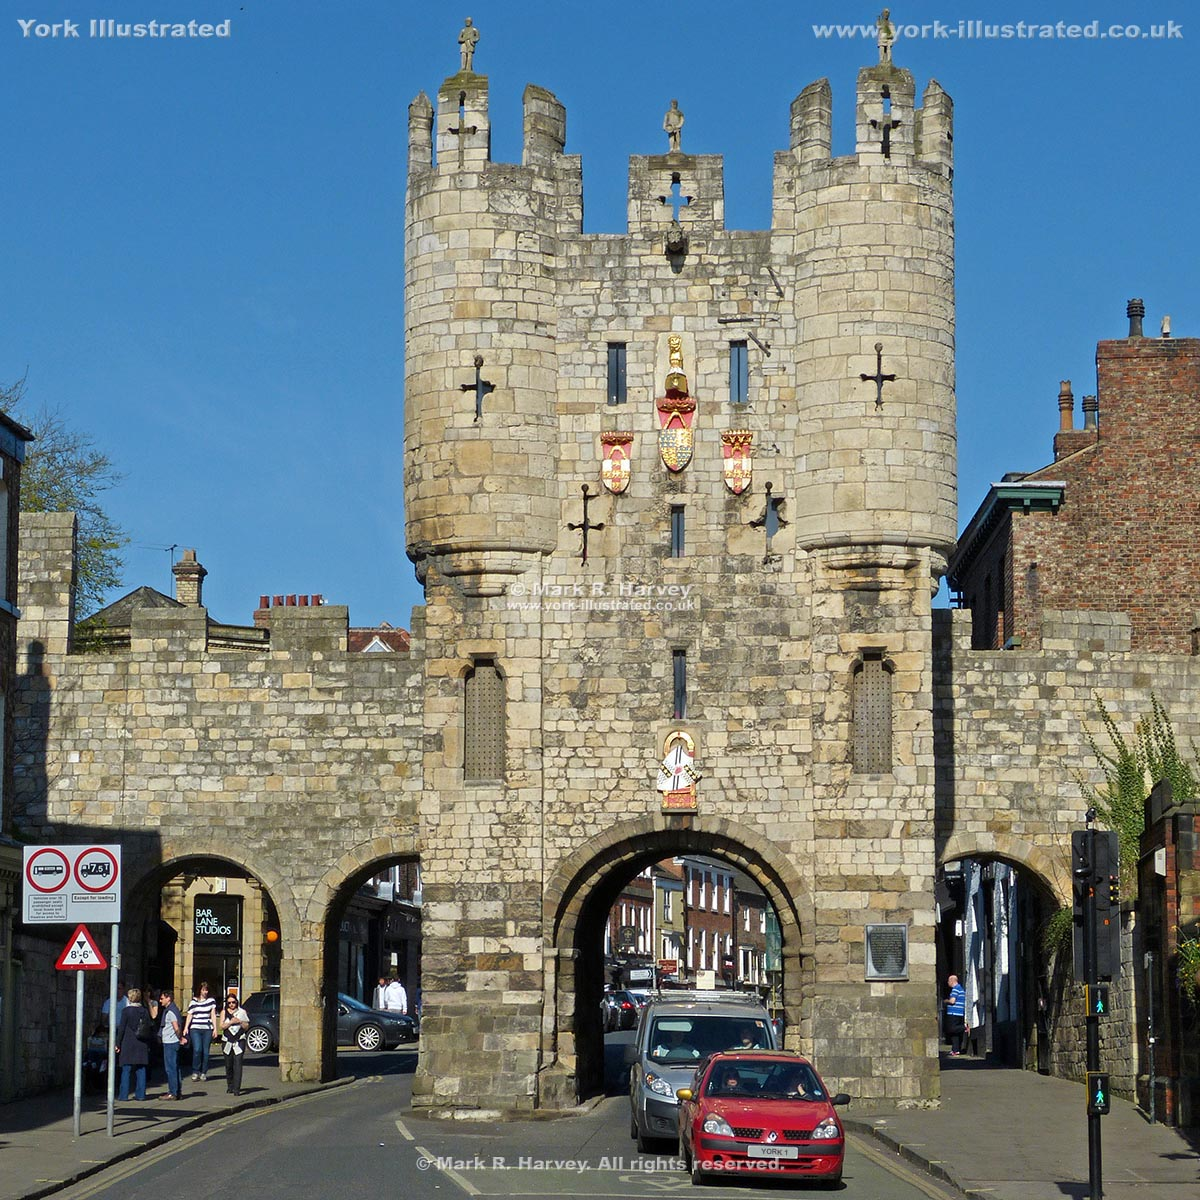 Photograph: The southeast (outward-facing) elevation of Micklegate Bar (York).